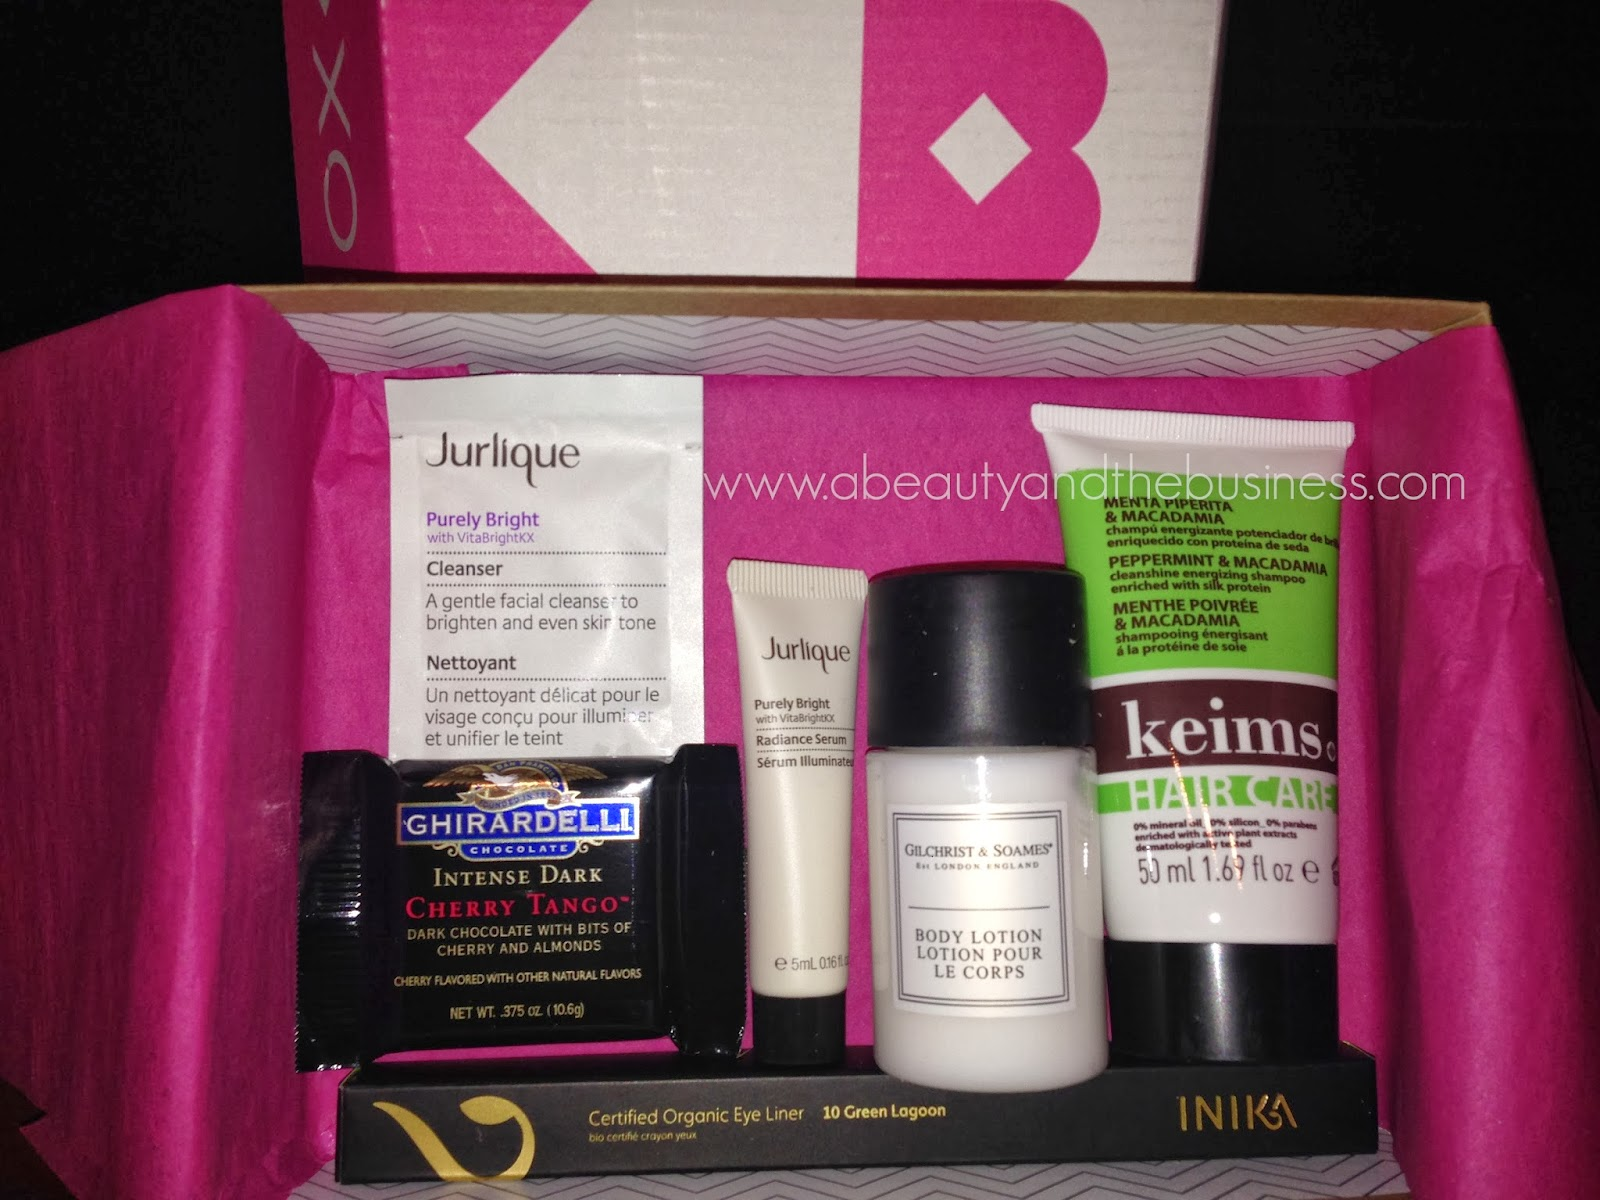 birchbox, birchbox jurlique, birchbox inika, birchbox march, birchbox march 2014, beauty subscription,